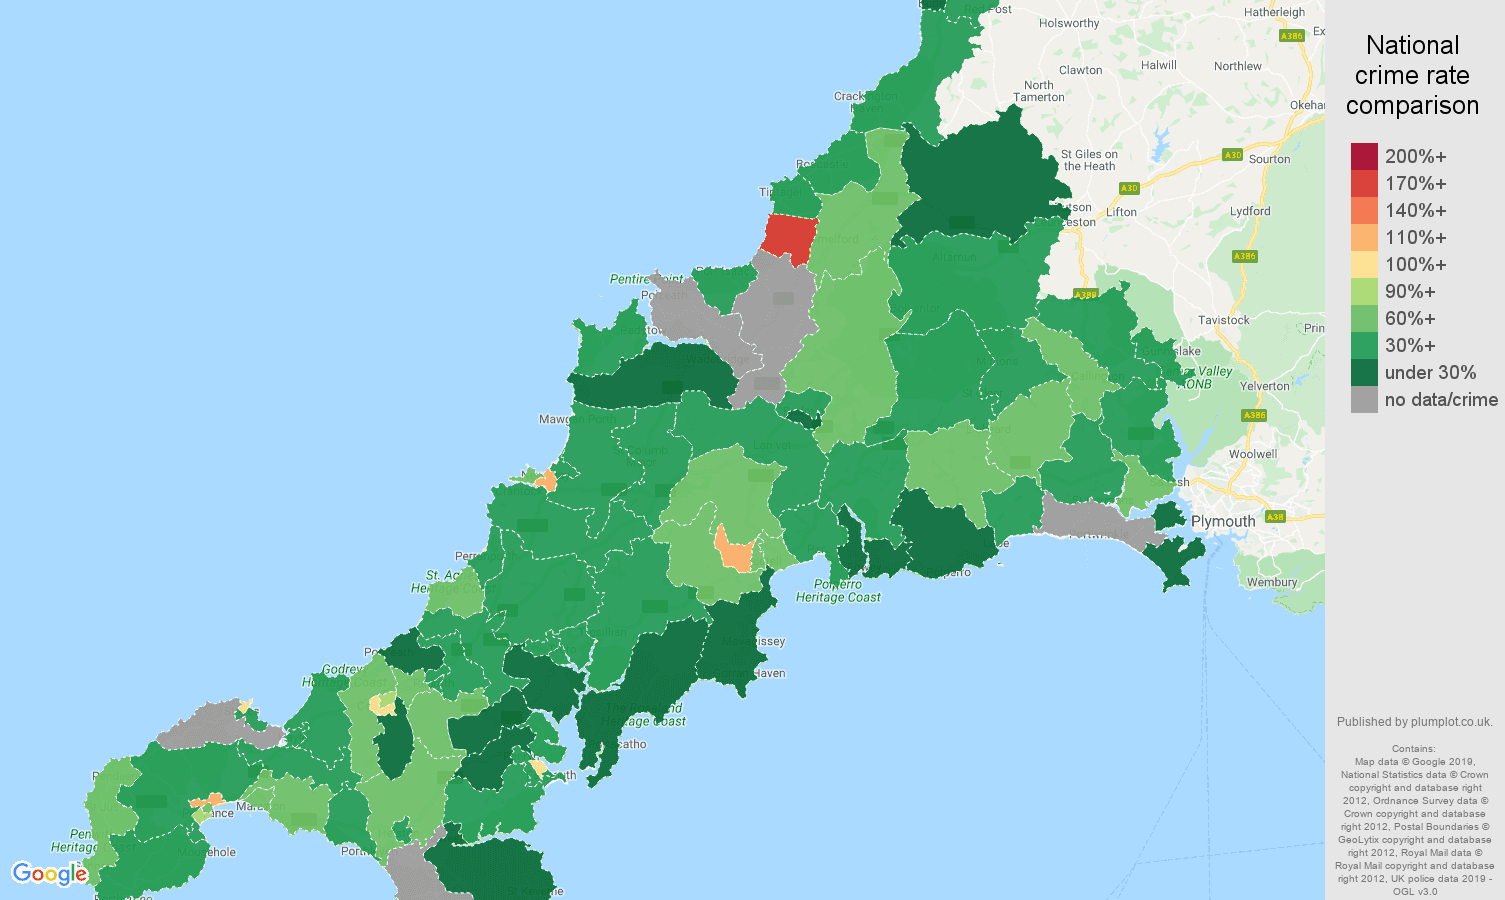 Cornwall other crime rate comparison map